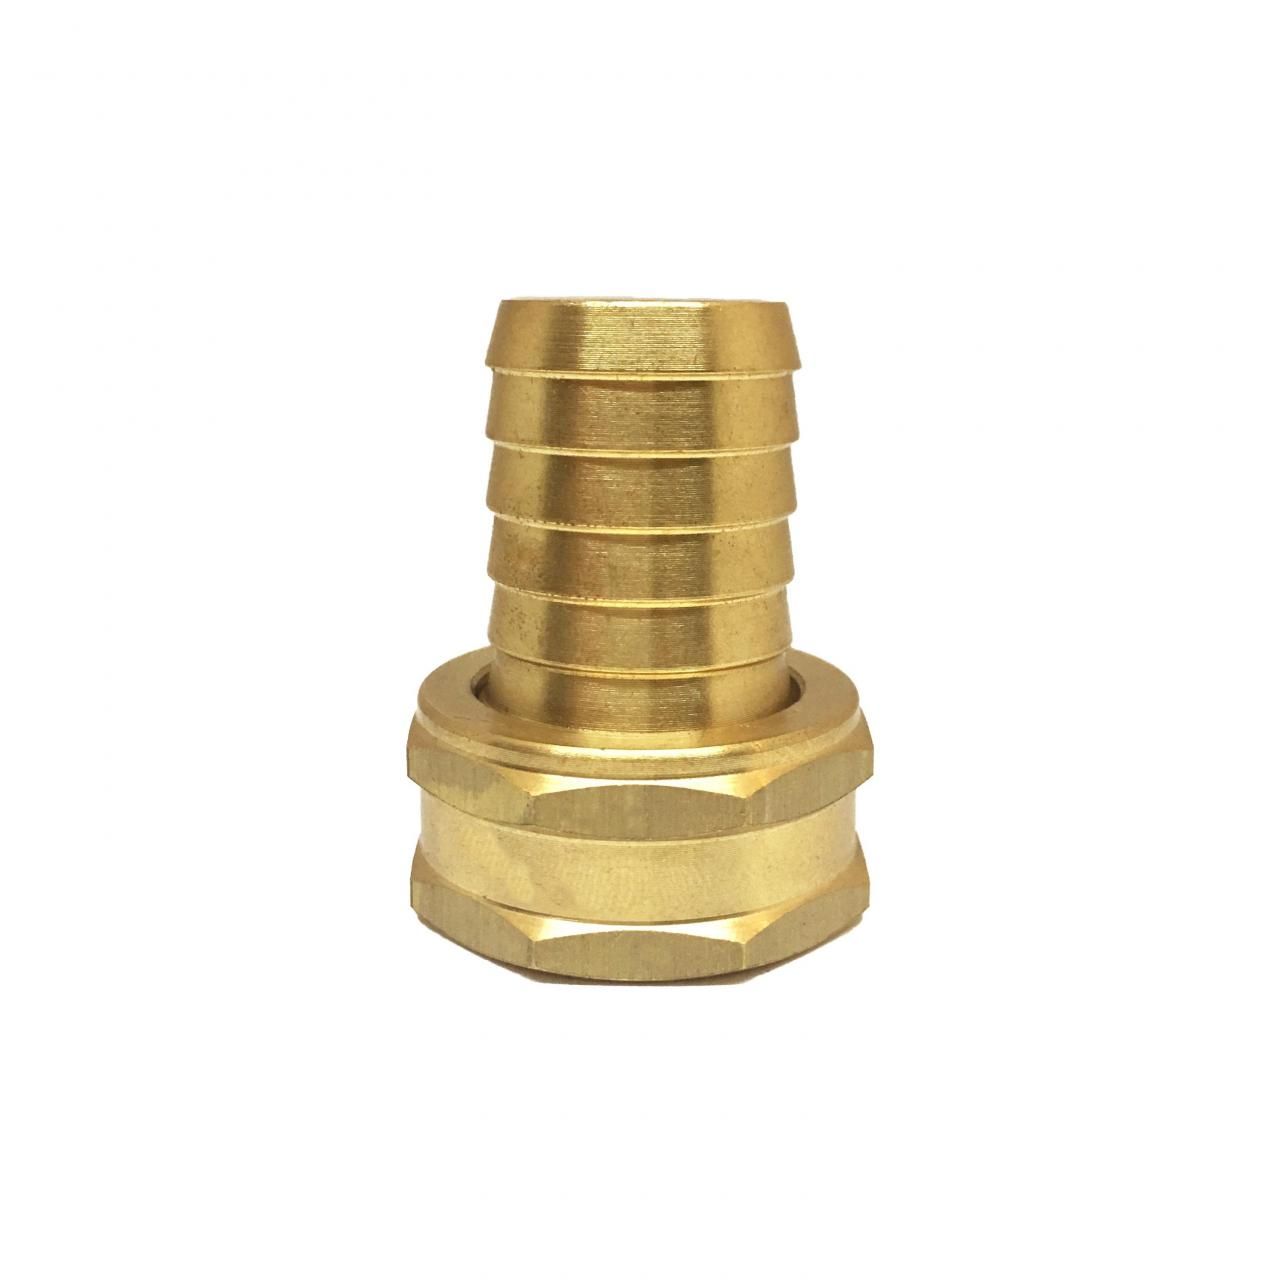 "Buy cheap 3/4"" Brass Hose Barb with 3/4"